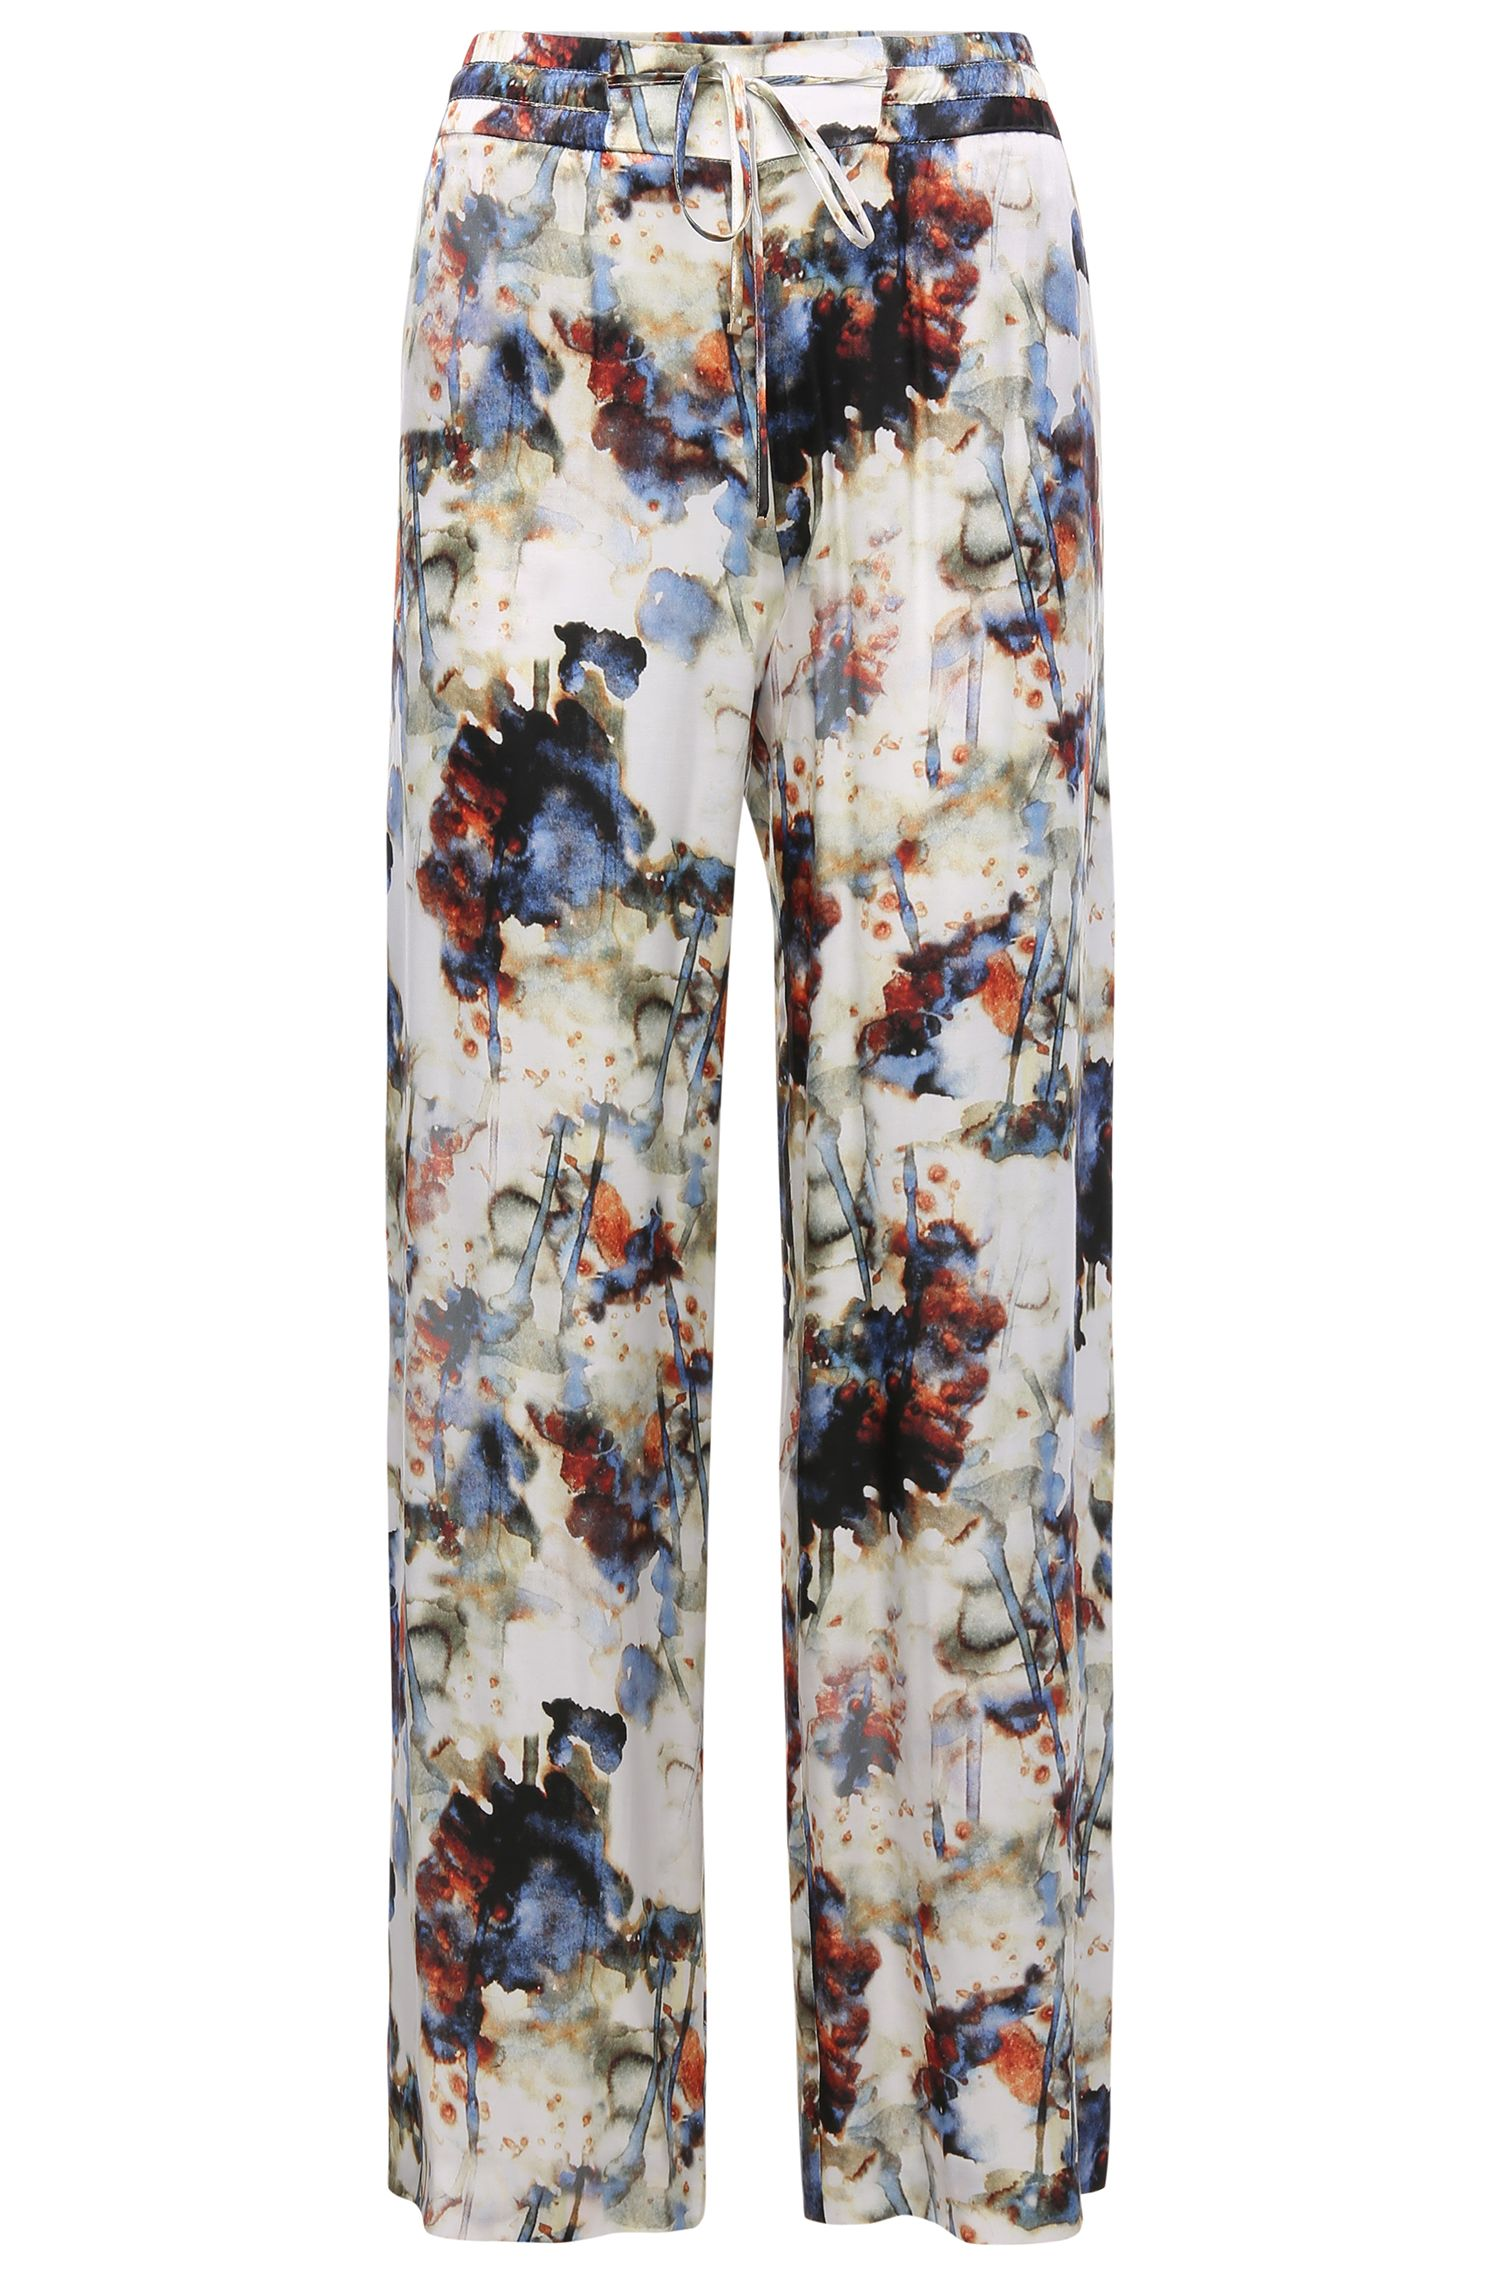 Patterned comfort-fit drawstring trousers in viscose and silk blend: 'Saflower'